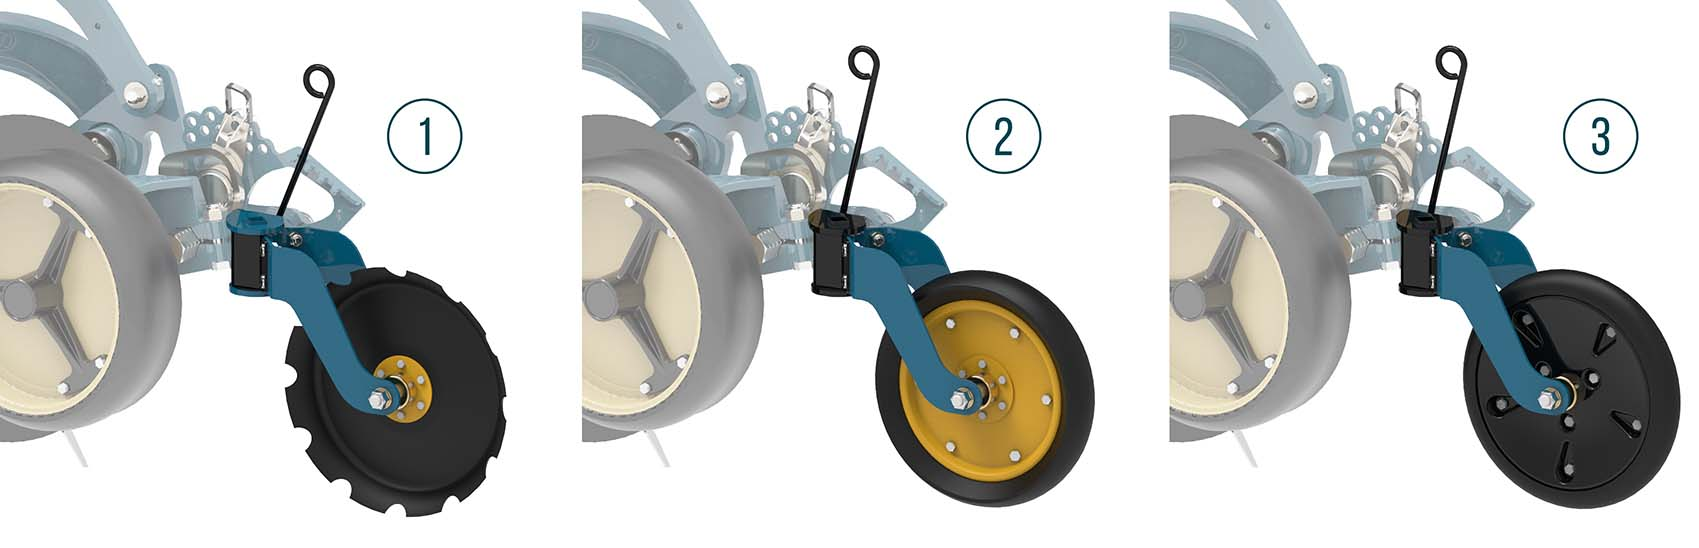 Equalizer No-Till Disc Seeder Closing wheels options | www.equalizer.co.za